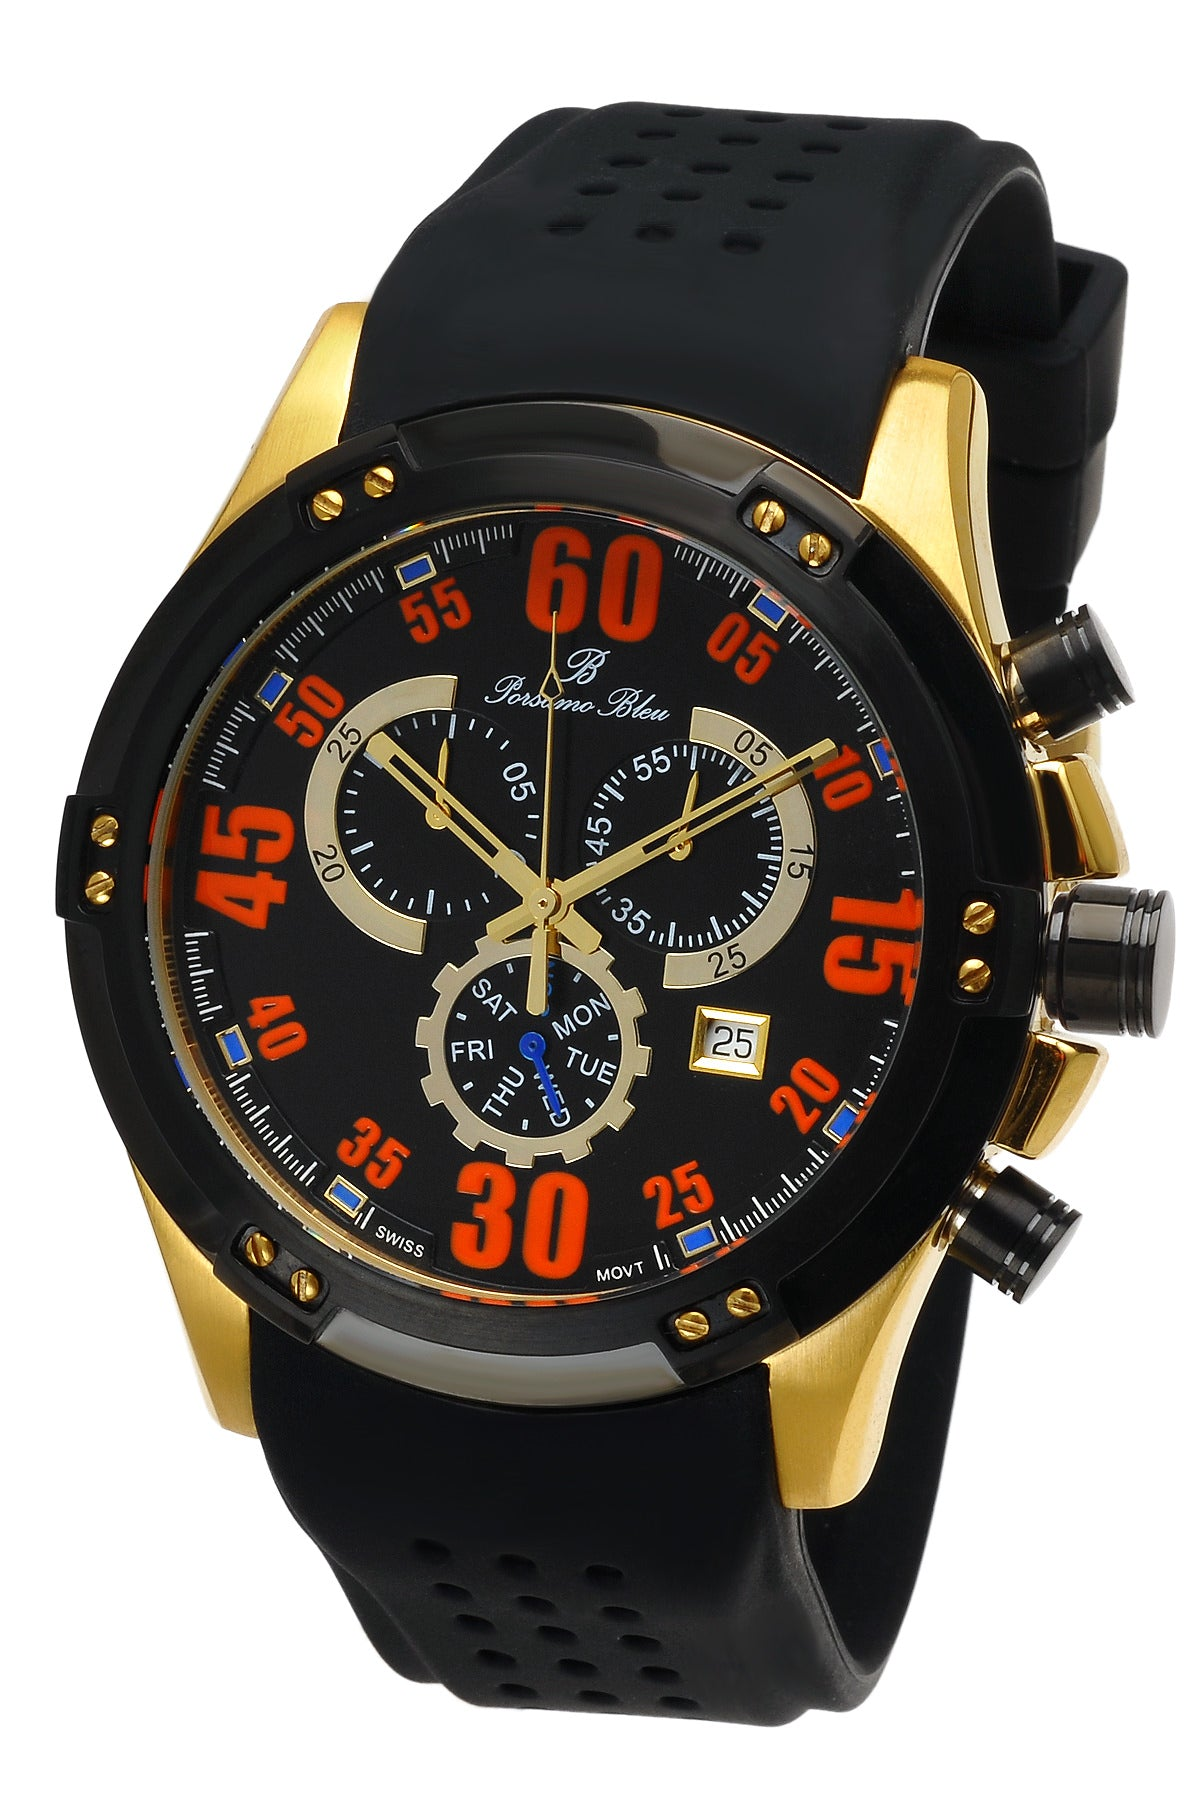 Porsamo Bleu Cancun luxury chronograph men's watch, silicone strap, gold, black 063CCAR